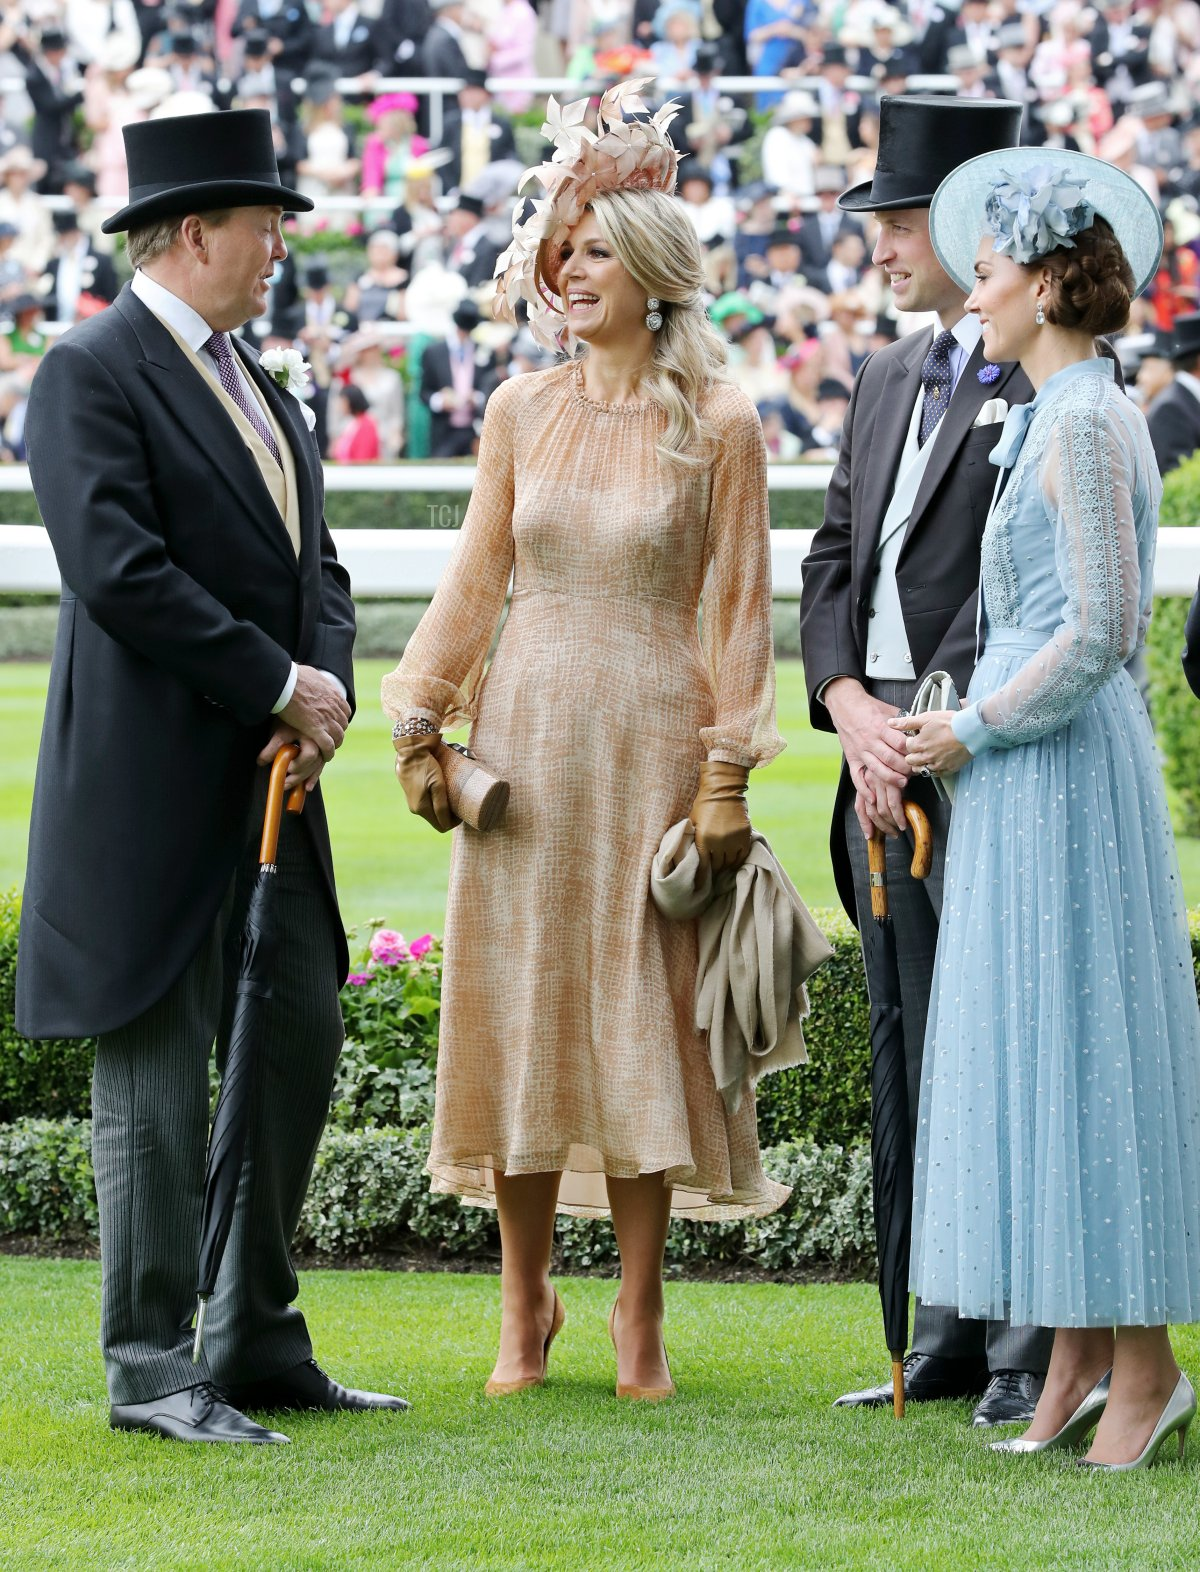 King Willem-Alexander of The Netherlands, Queen Maxima of The Netherlands, Prince William, Duke of Cambridge and Catherine, Duchess of Cambridge attend day one of Royal Ascot at Ascot Racecourse on June 18, 2019 in Ascot, England